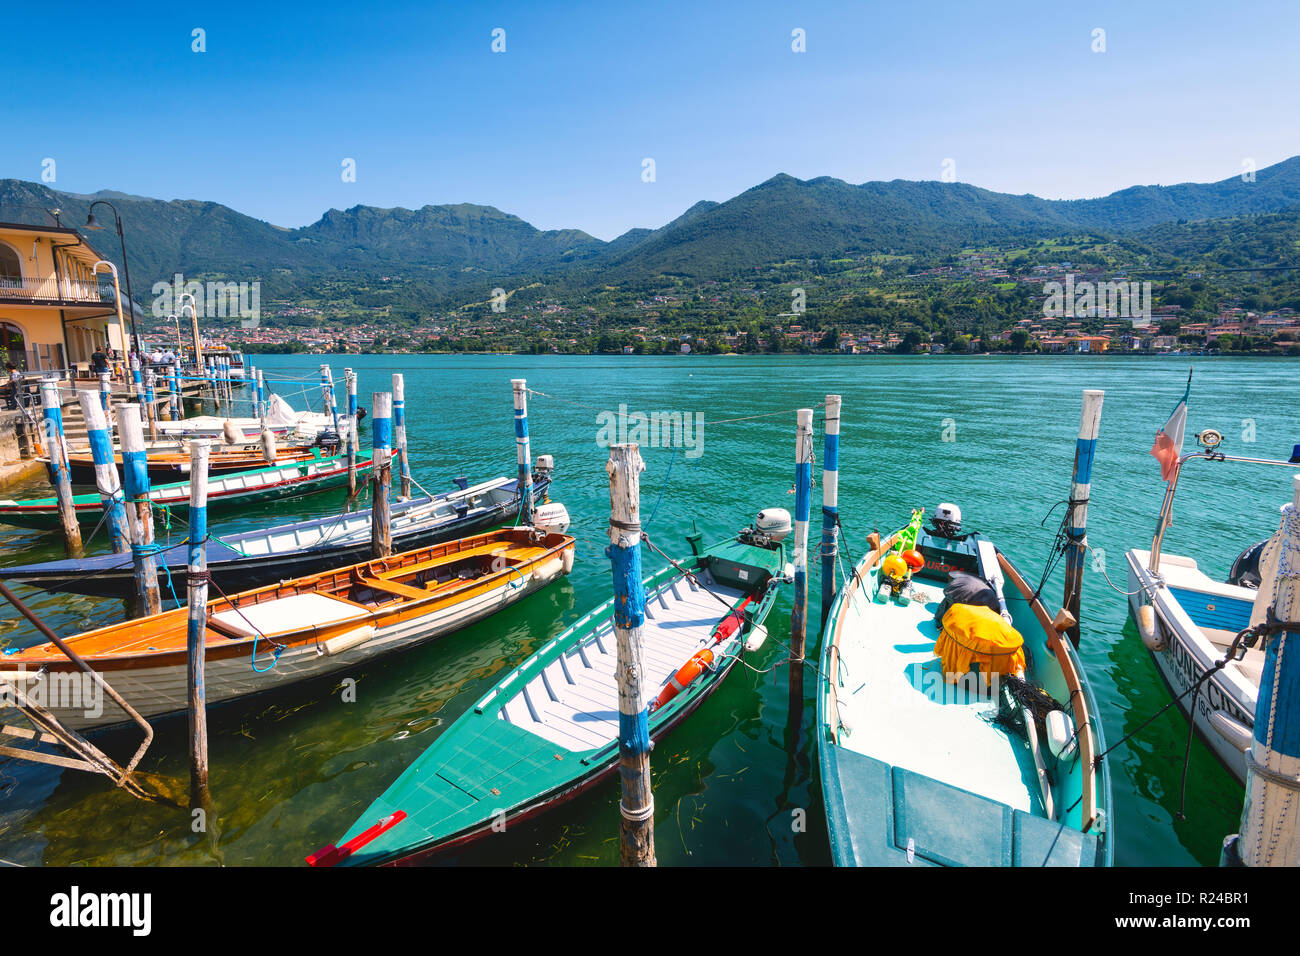 Boats moored at Monte Isola, the largest lake island in Europe, Province of Brescia, Lombardy, Italy, Europe - Stock Image